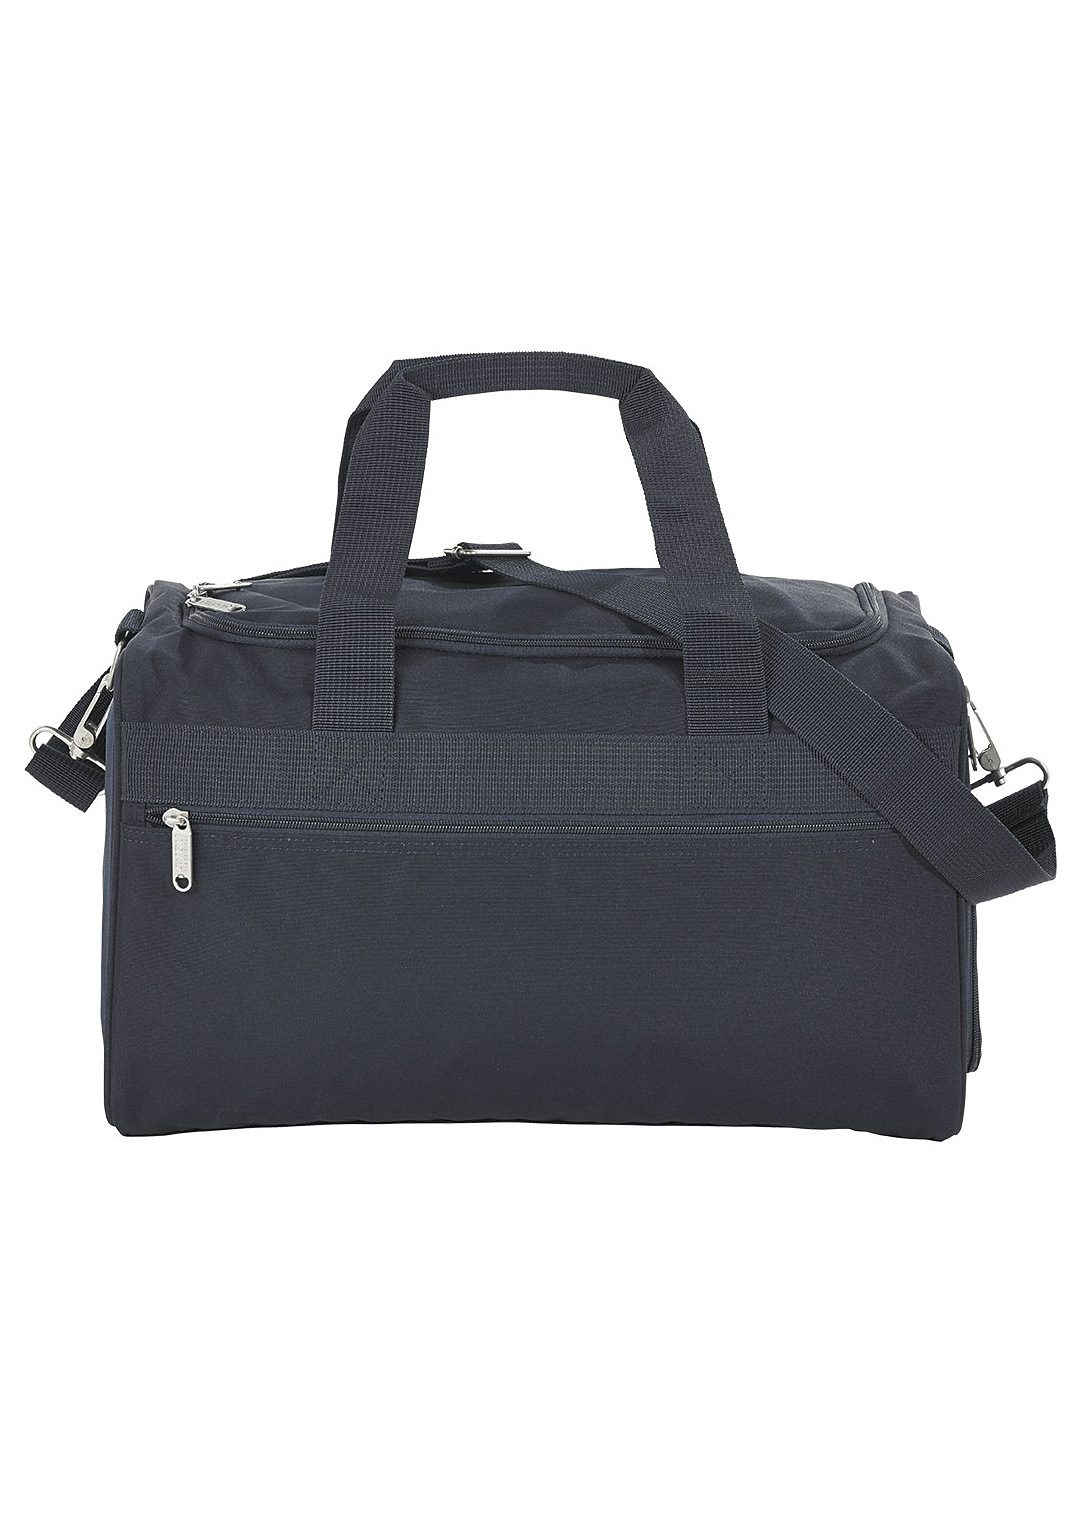 4YOU Sporttasche, Marine, »Sportbag M«